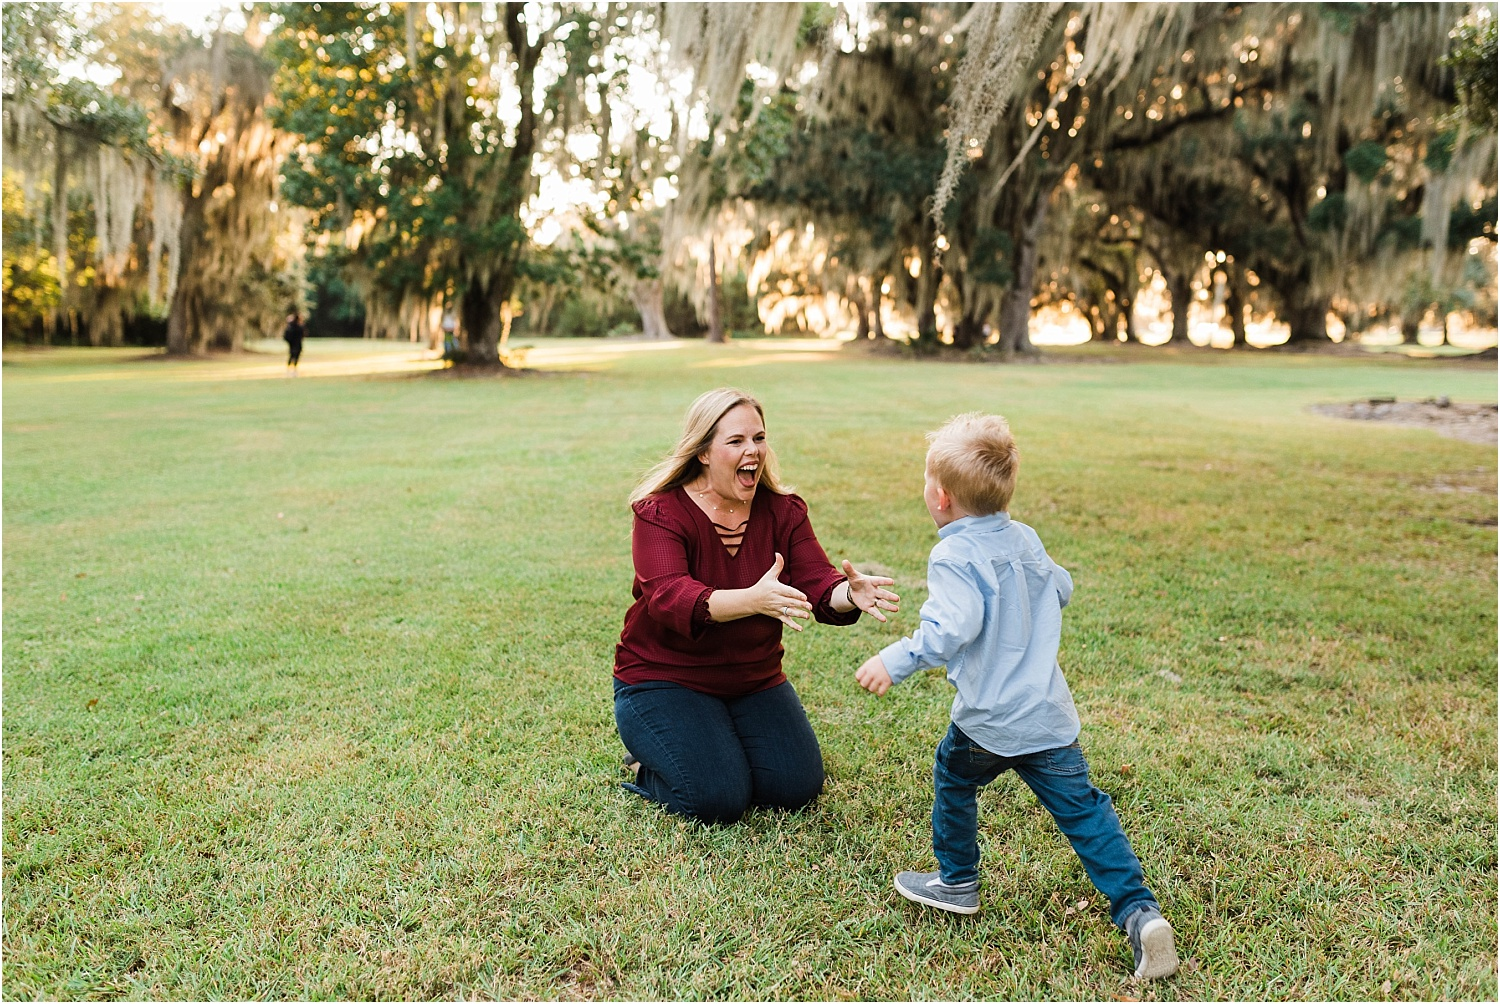 Smalley Family Fall 2019-Fountainbleau-State-Park-Family-Photos_Gabby Chapin Photography_0033_BLOG.jpg